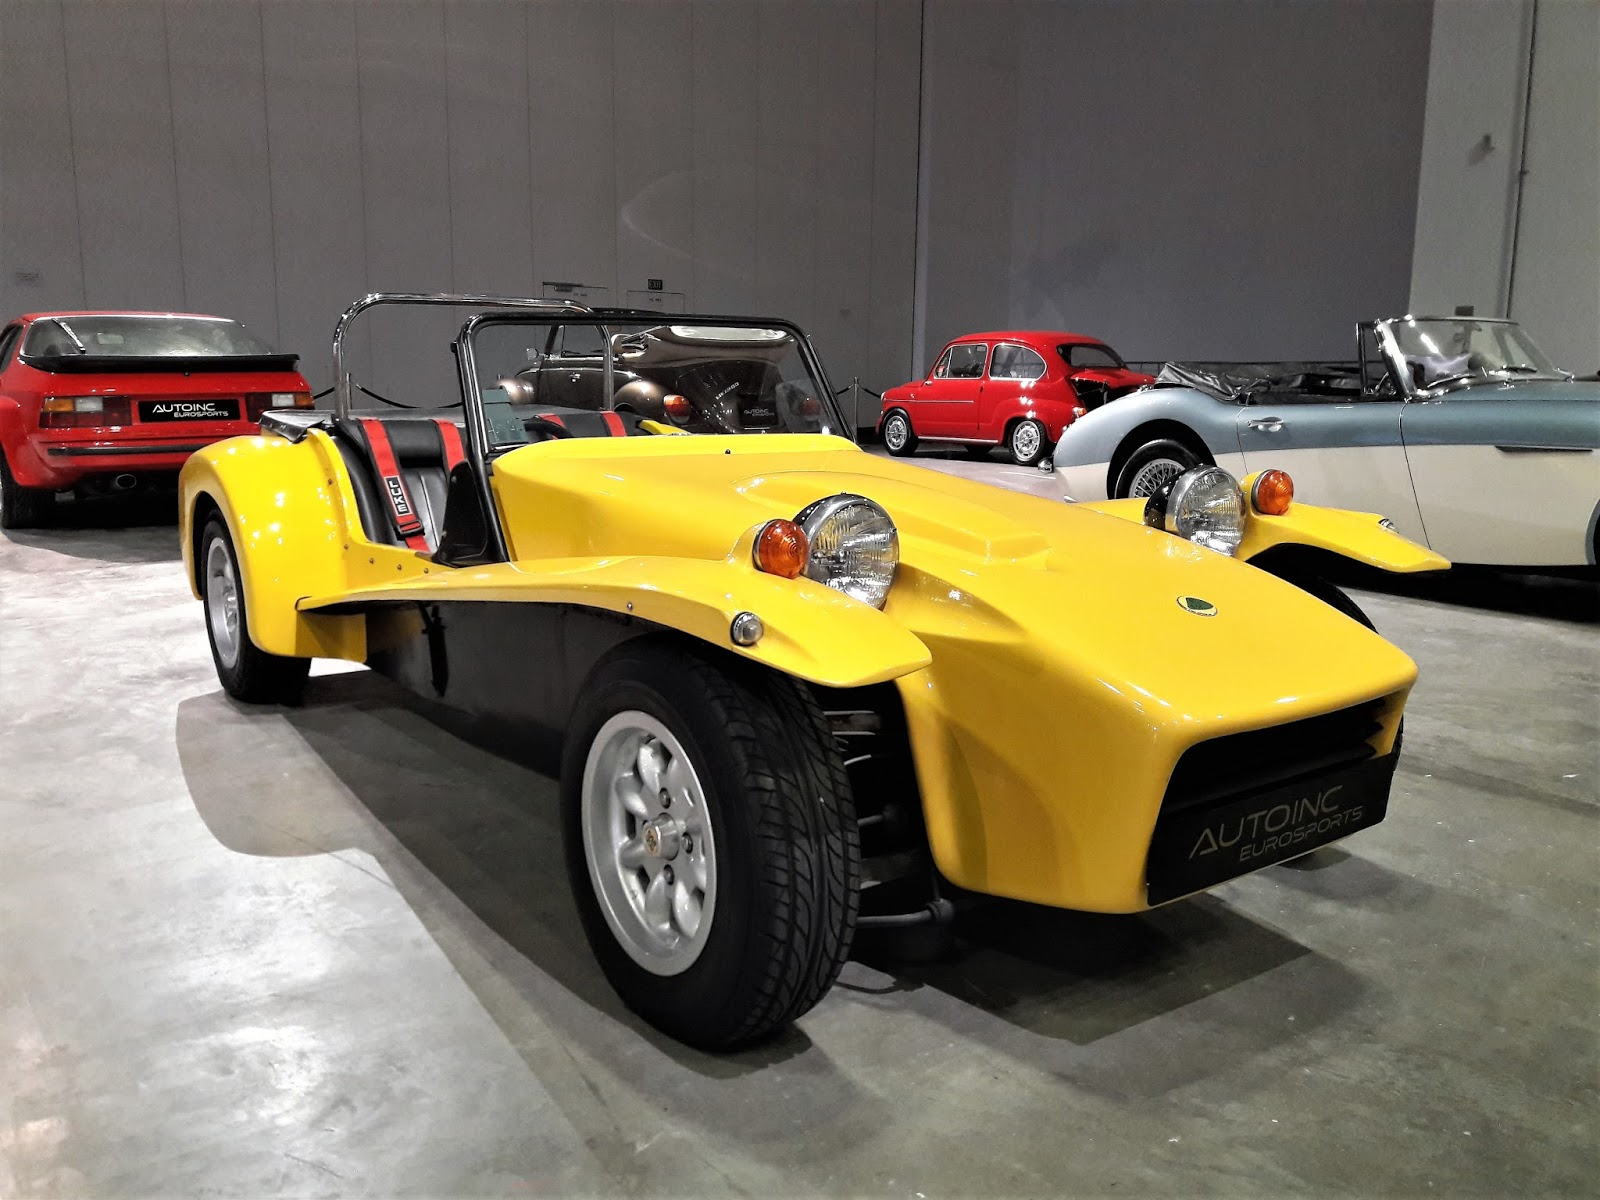 Singapore Vintage and Classic Cars: More than an old car #39: Lotus ...